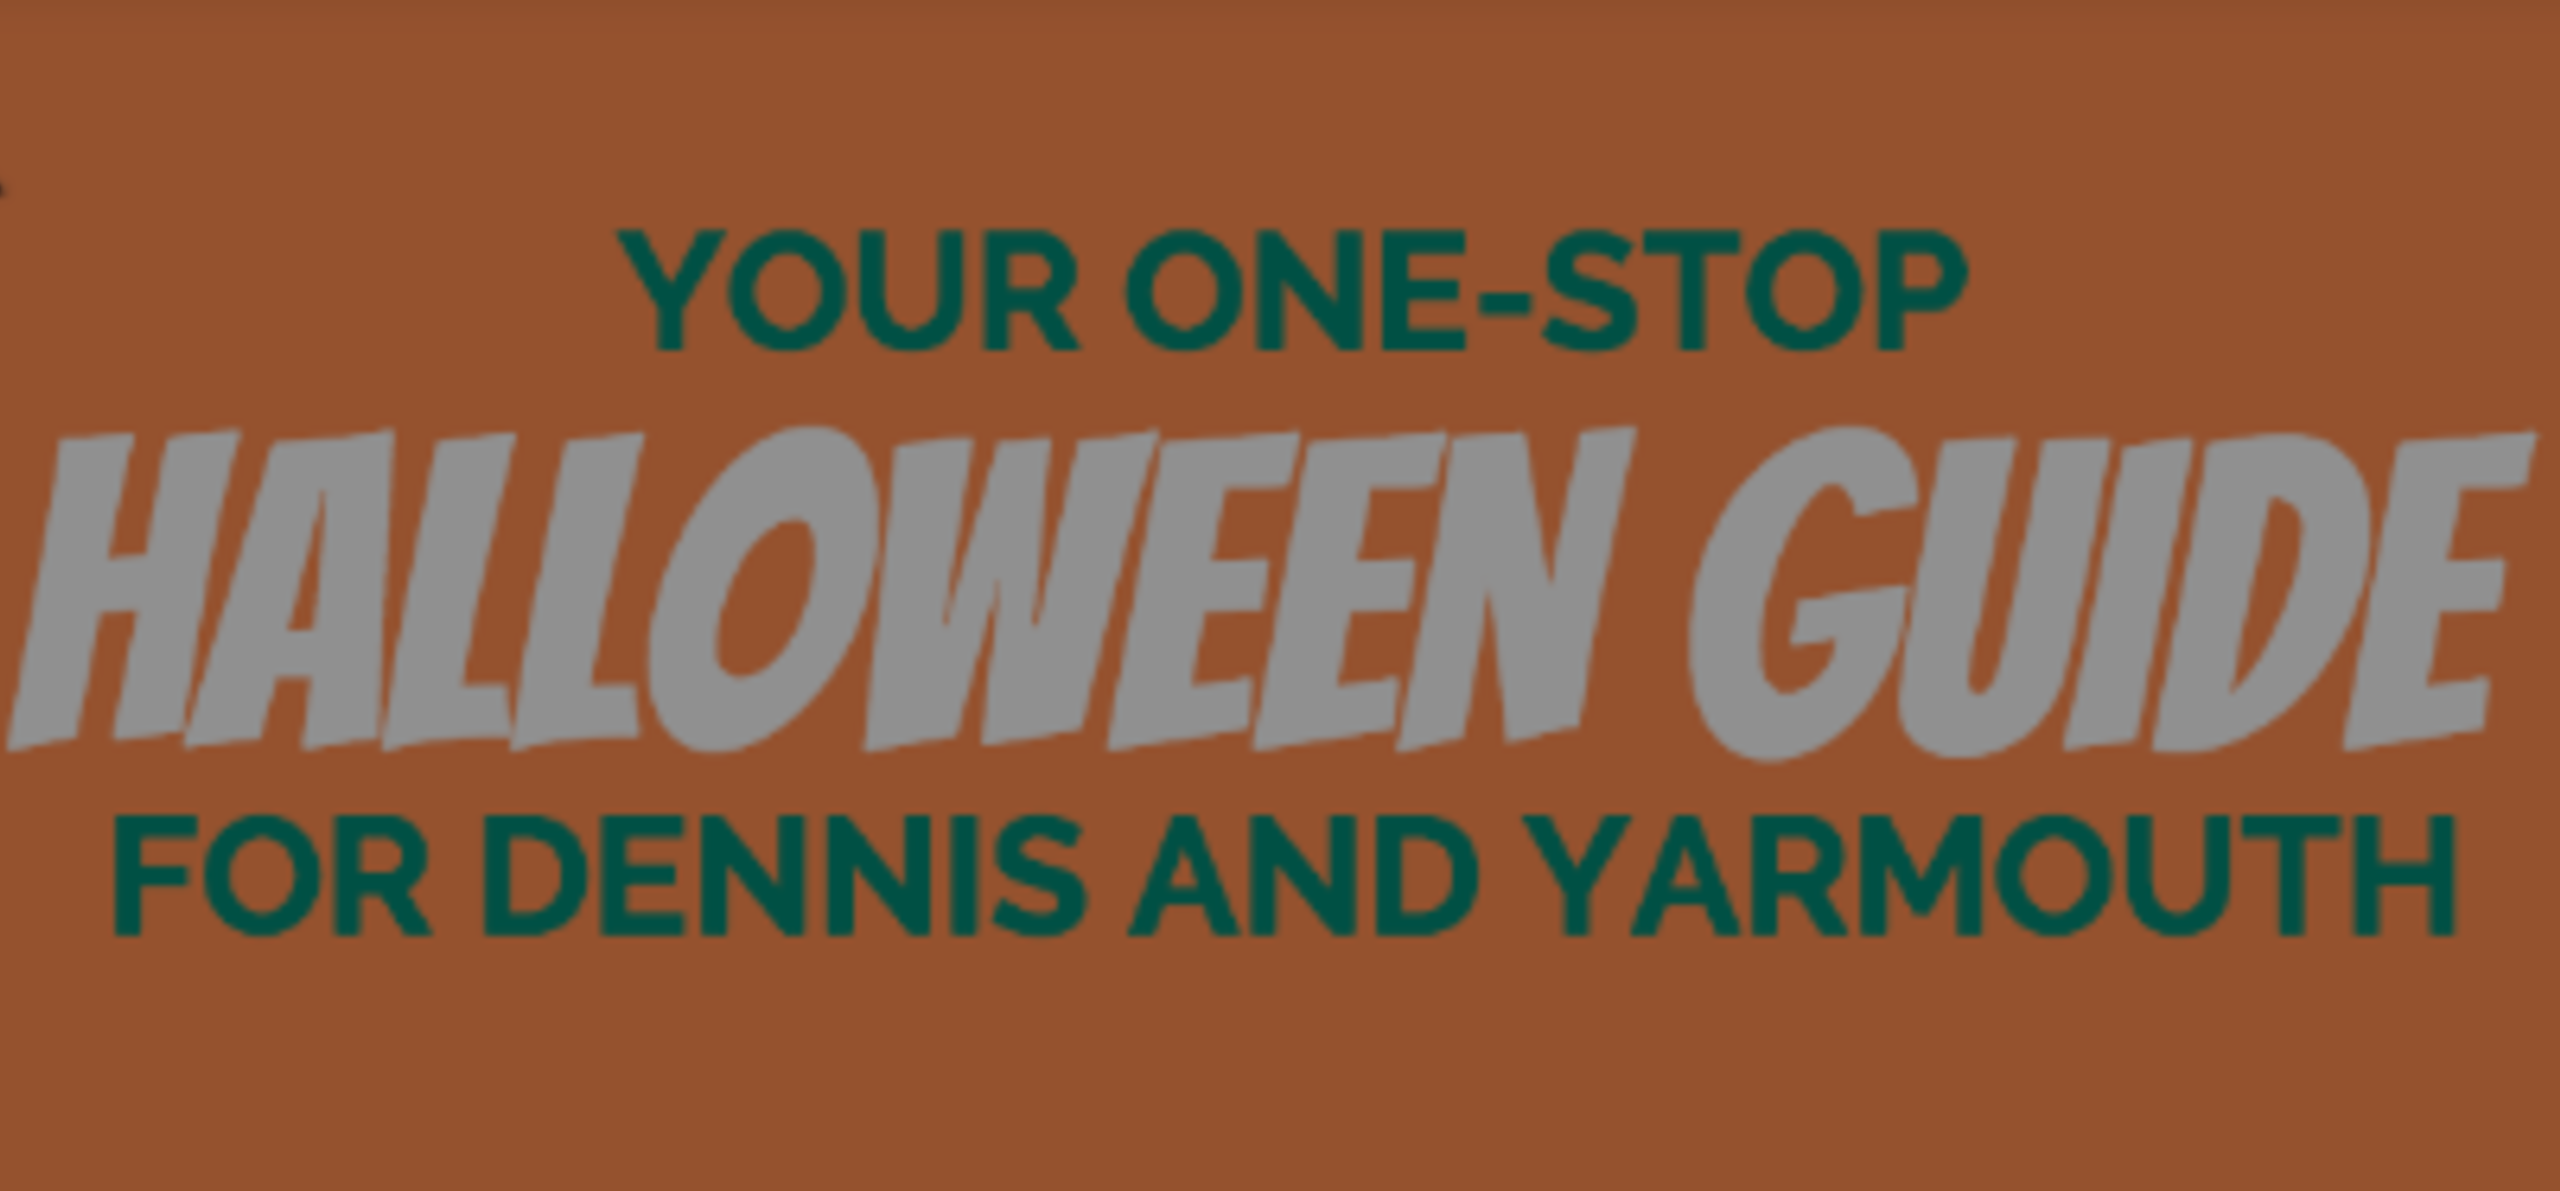 One-Stop Halloween Guide for Dennis and Yarmouth